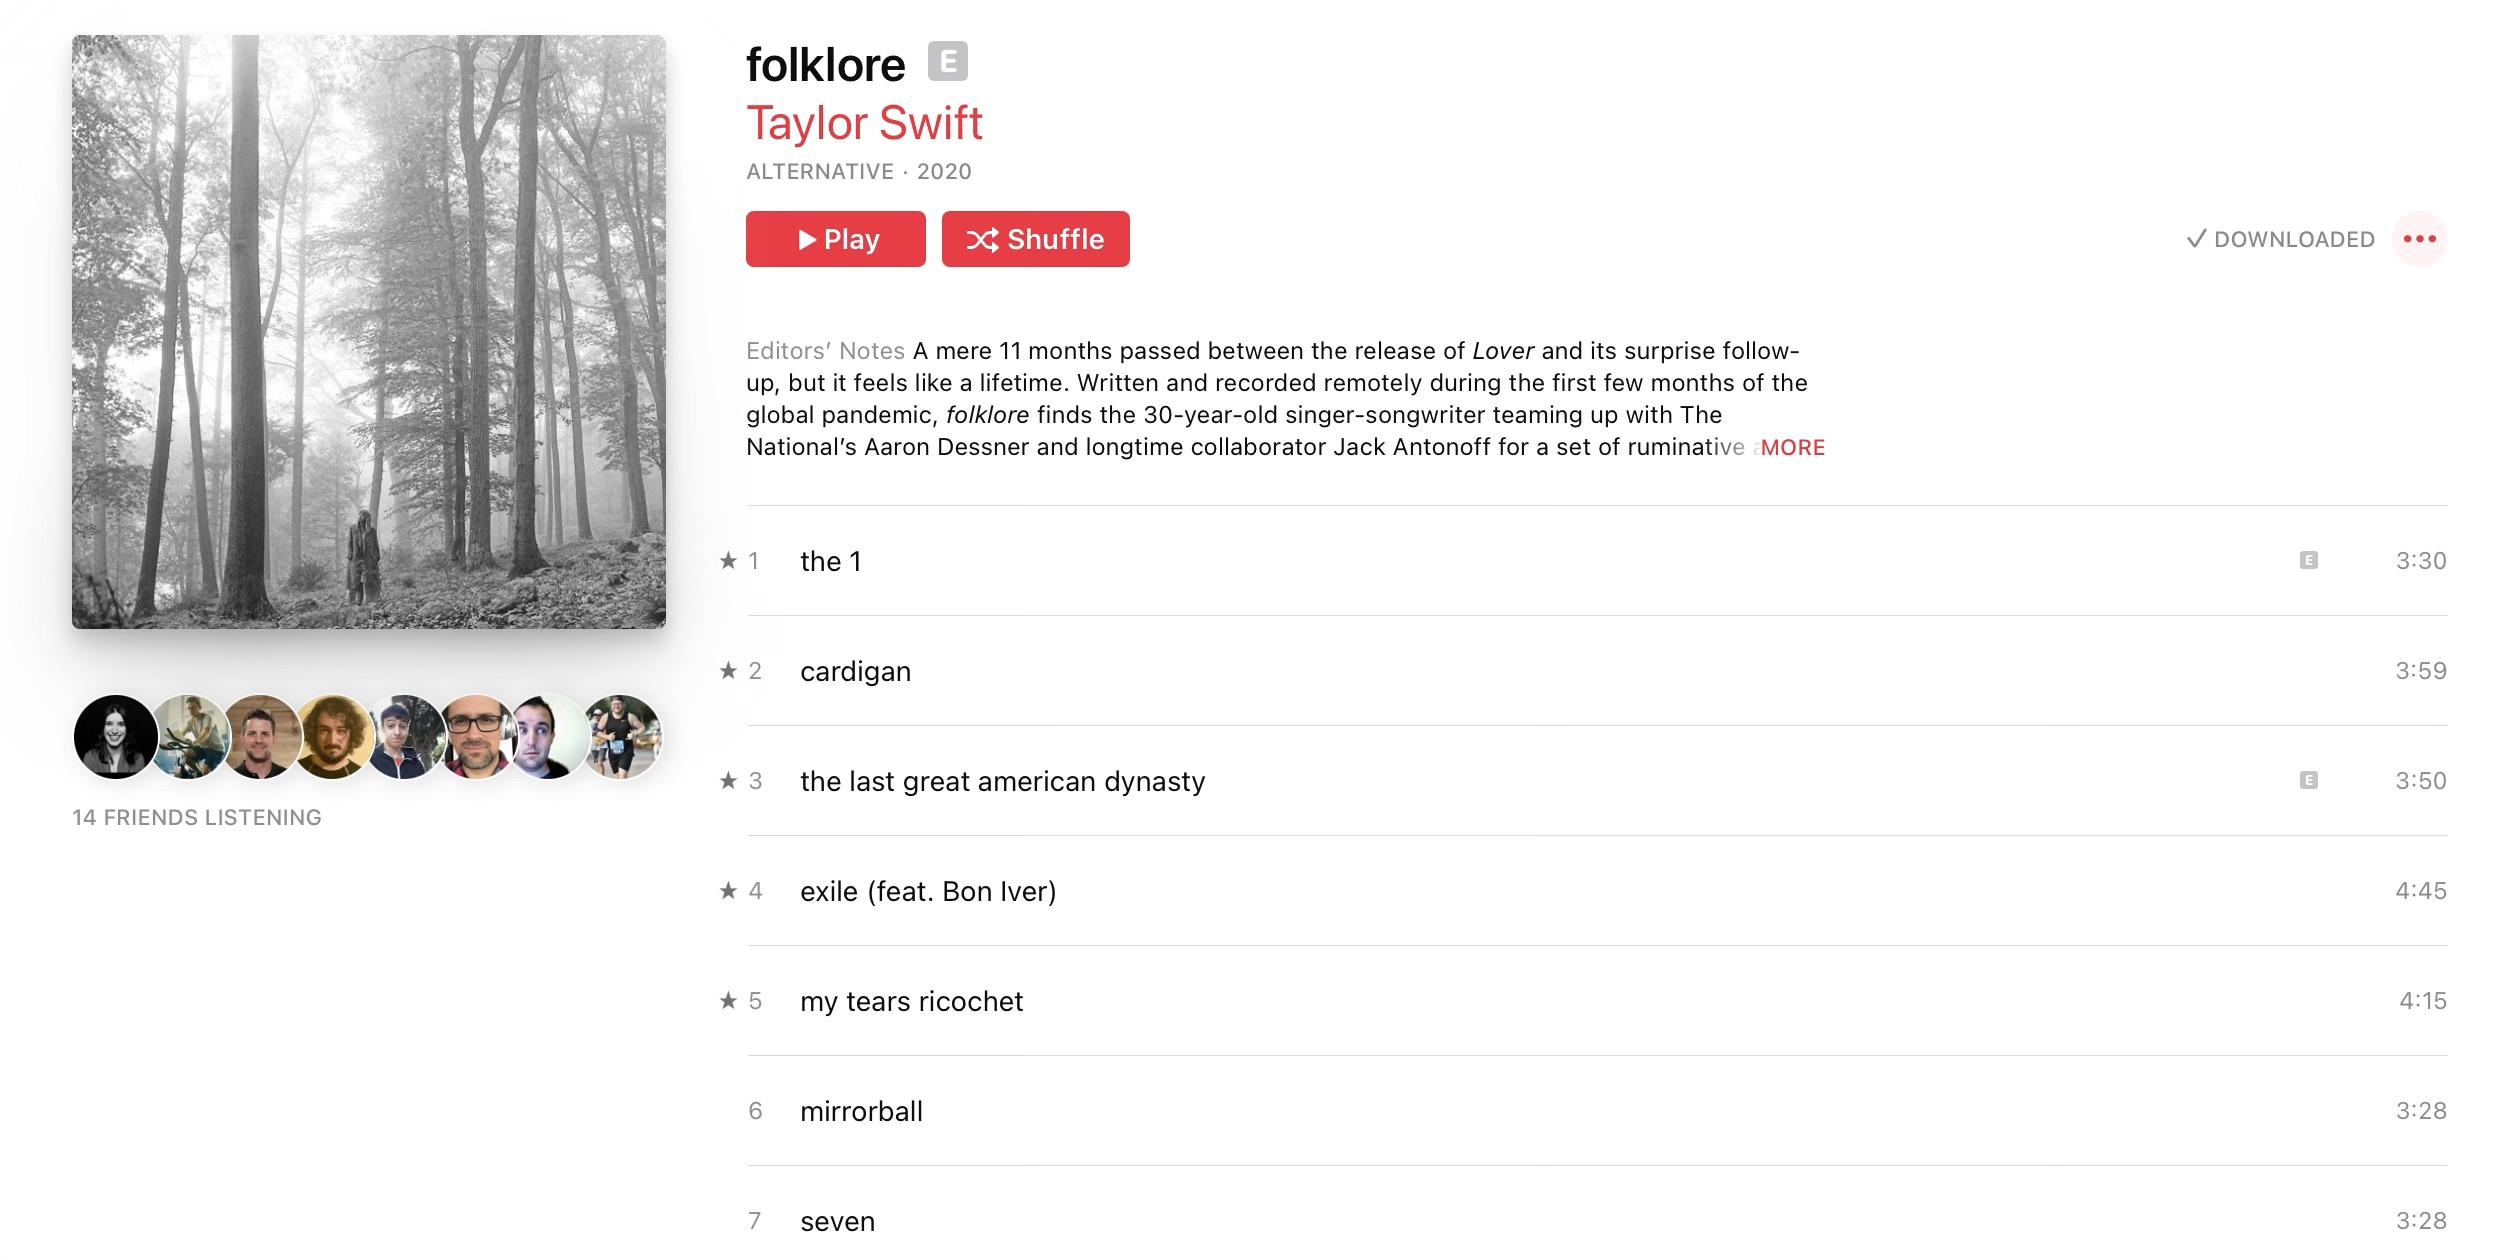 New Taylor Swift Album Folklore Sets Apple Music Streaming Record For A Pop Release 9to5mac